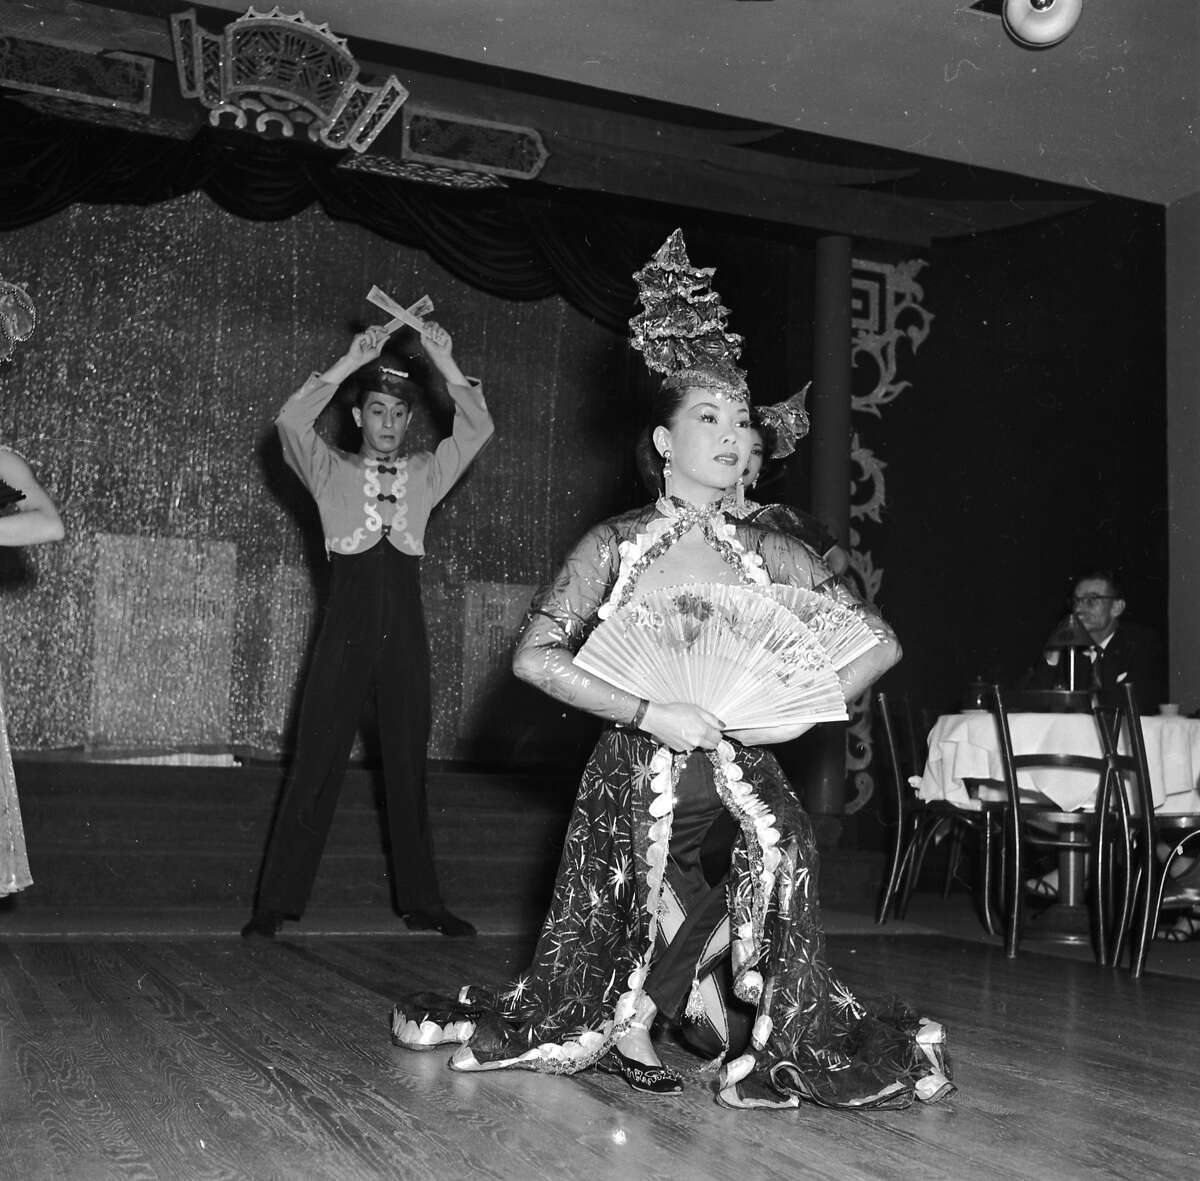 Circa 1955: Dancers Mae Tai Sing and Tony Wing perform an elaborate floor show at Forbidden City, a nightclub in Chinatown, San Francisco. (Photo by Orlando /Three Lions/Getty Images)